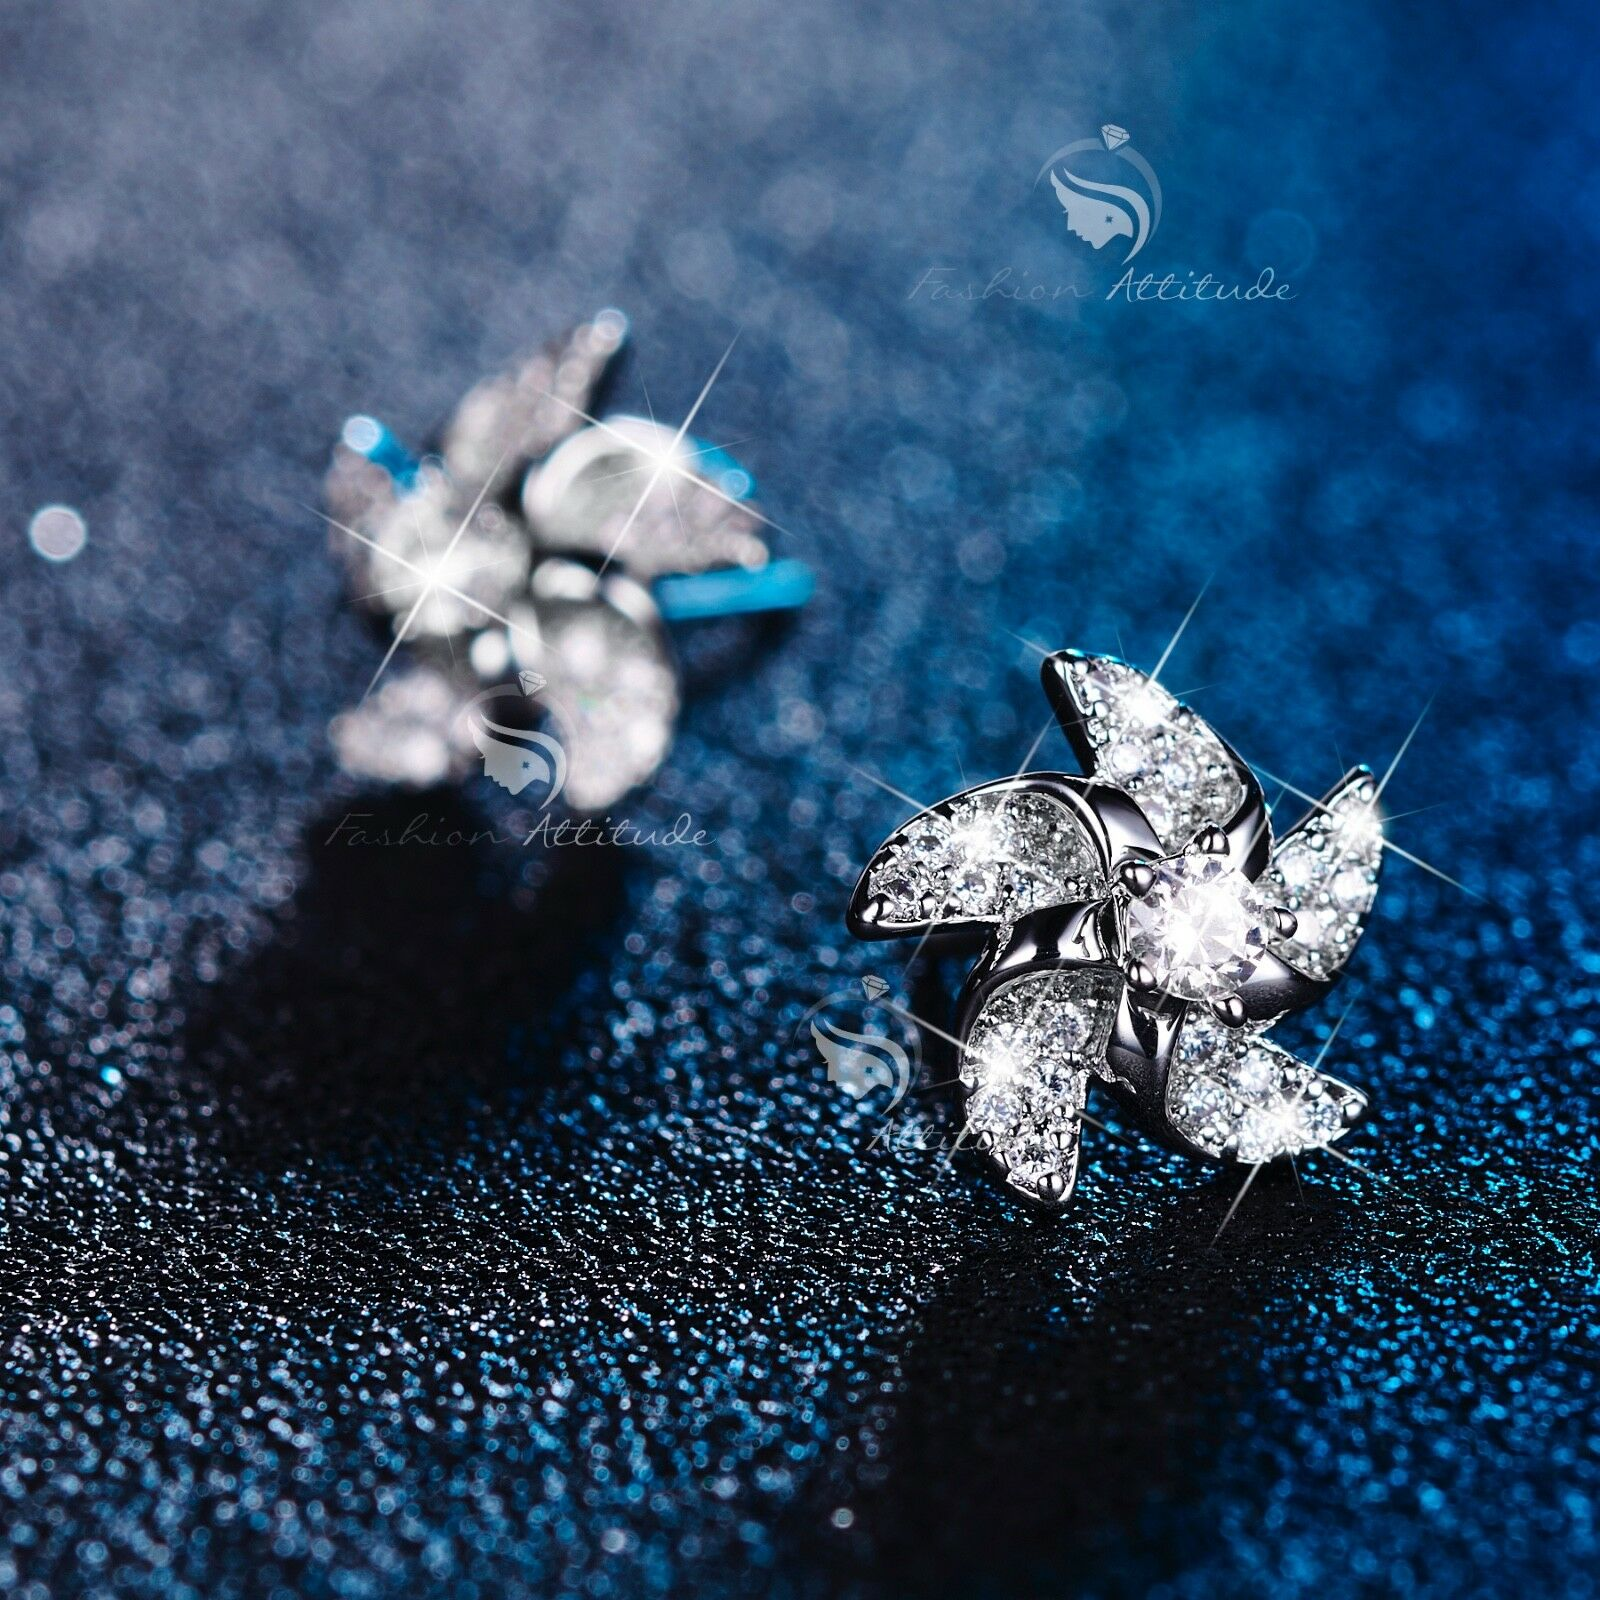 23c1a20aa95a0 Details about 18k white gold filled made with SWAROVSKI CZ crystal windmill  earrings stud cute